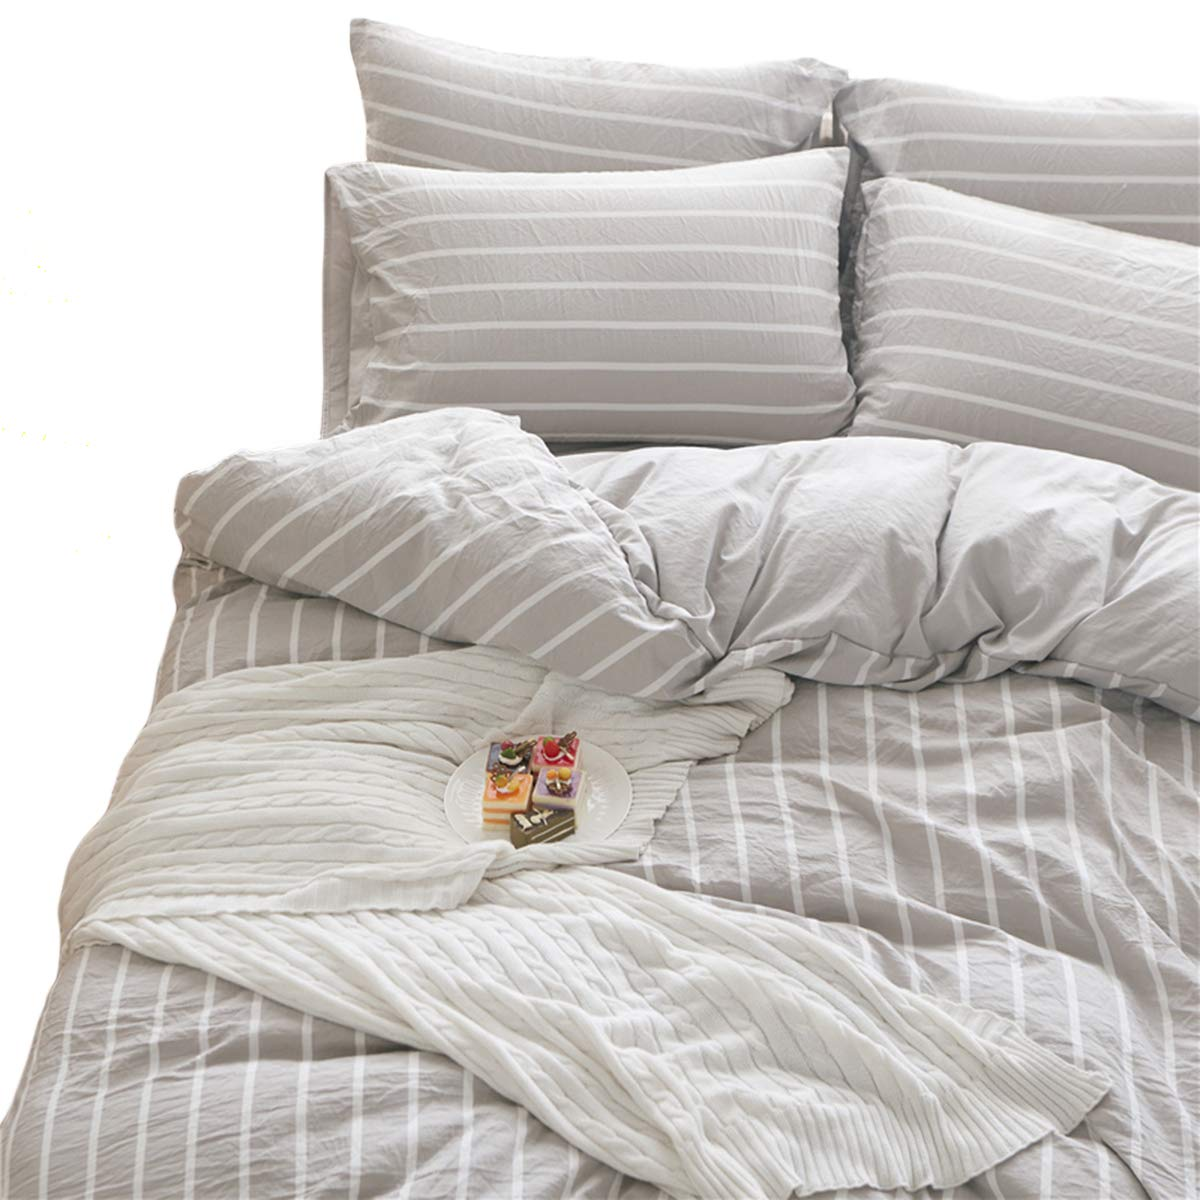 DOLDOA Washed Cotton Duvet Cover Queen (90x90 inch),Grey Striped Comforter Cover Lightweight and Soft Bedding Set,3 Piece (1 Duvet Cover + 2 Pillow Shams), Zipper Closure and Easy Washing